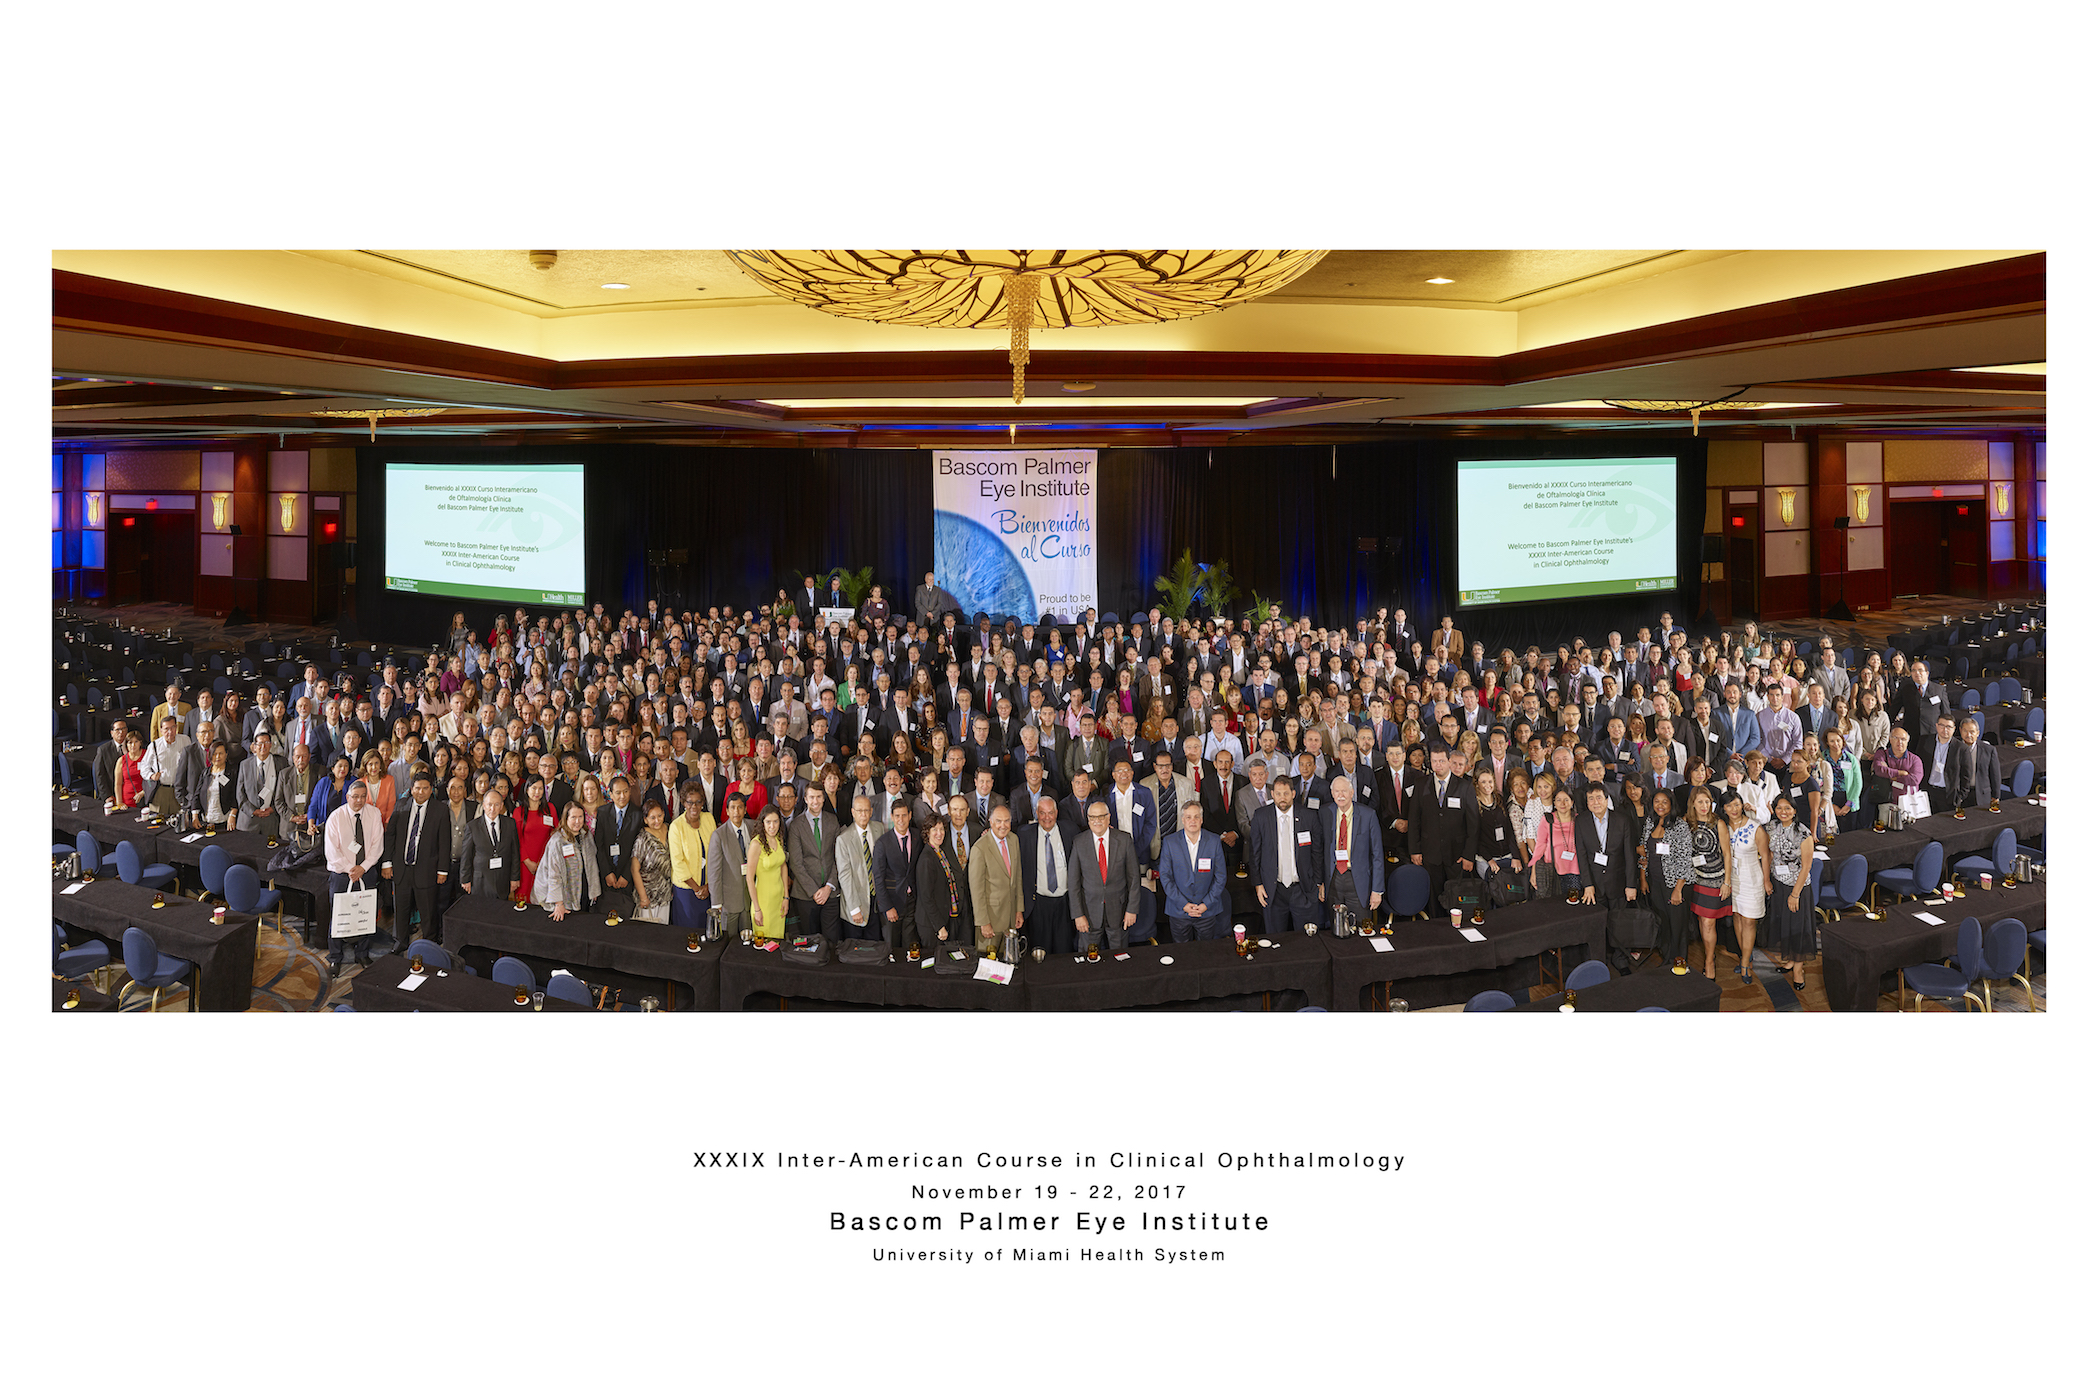 XXXIX Inter-American Course in Clinical Ophthalmology